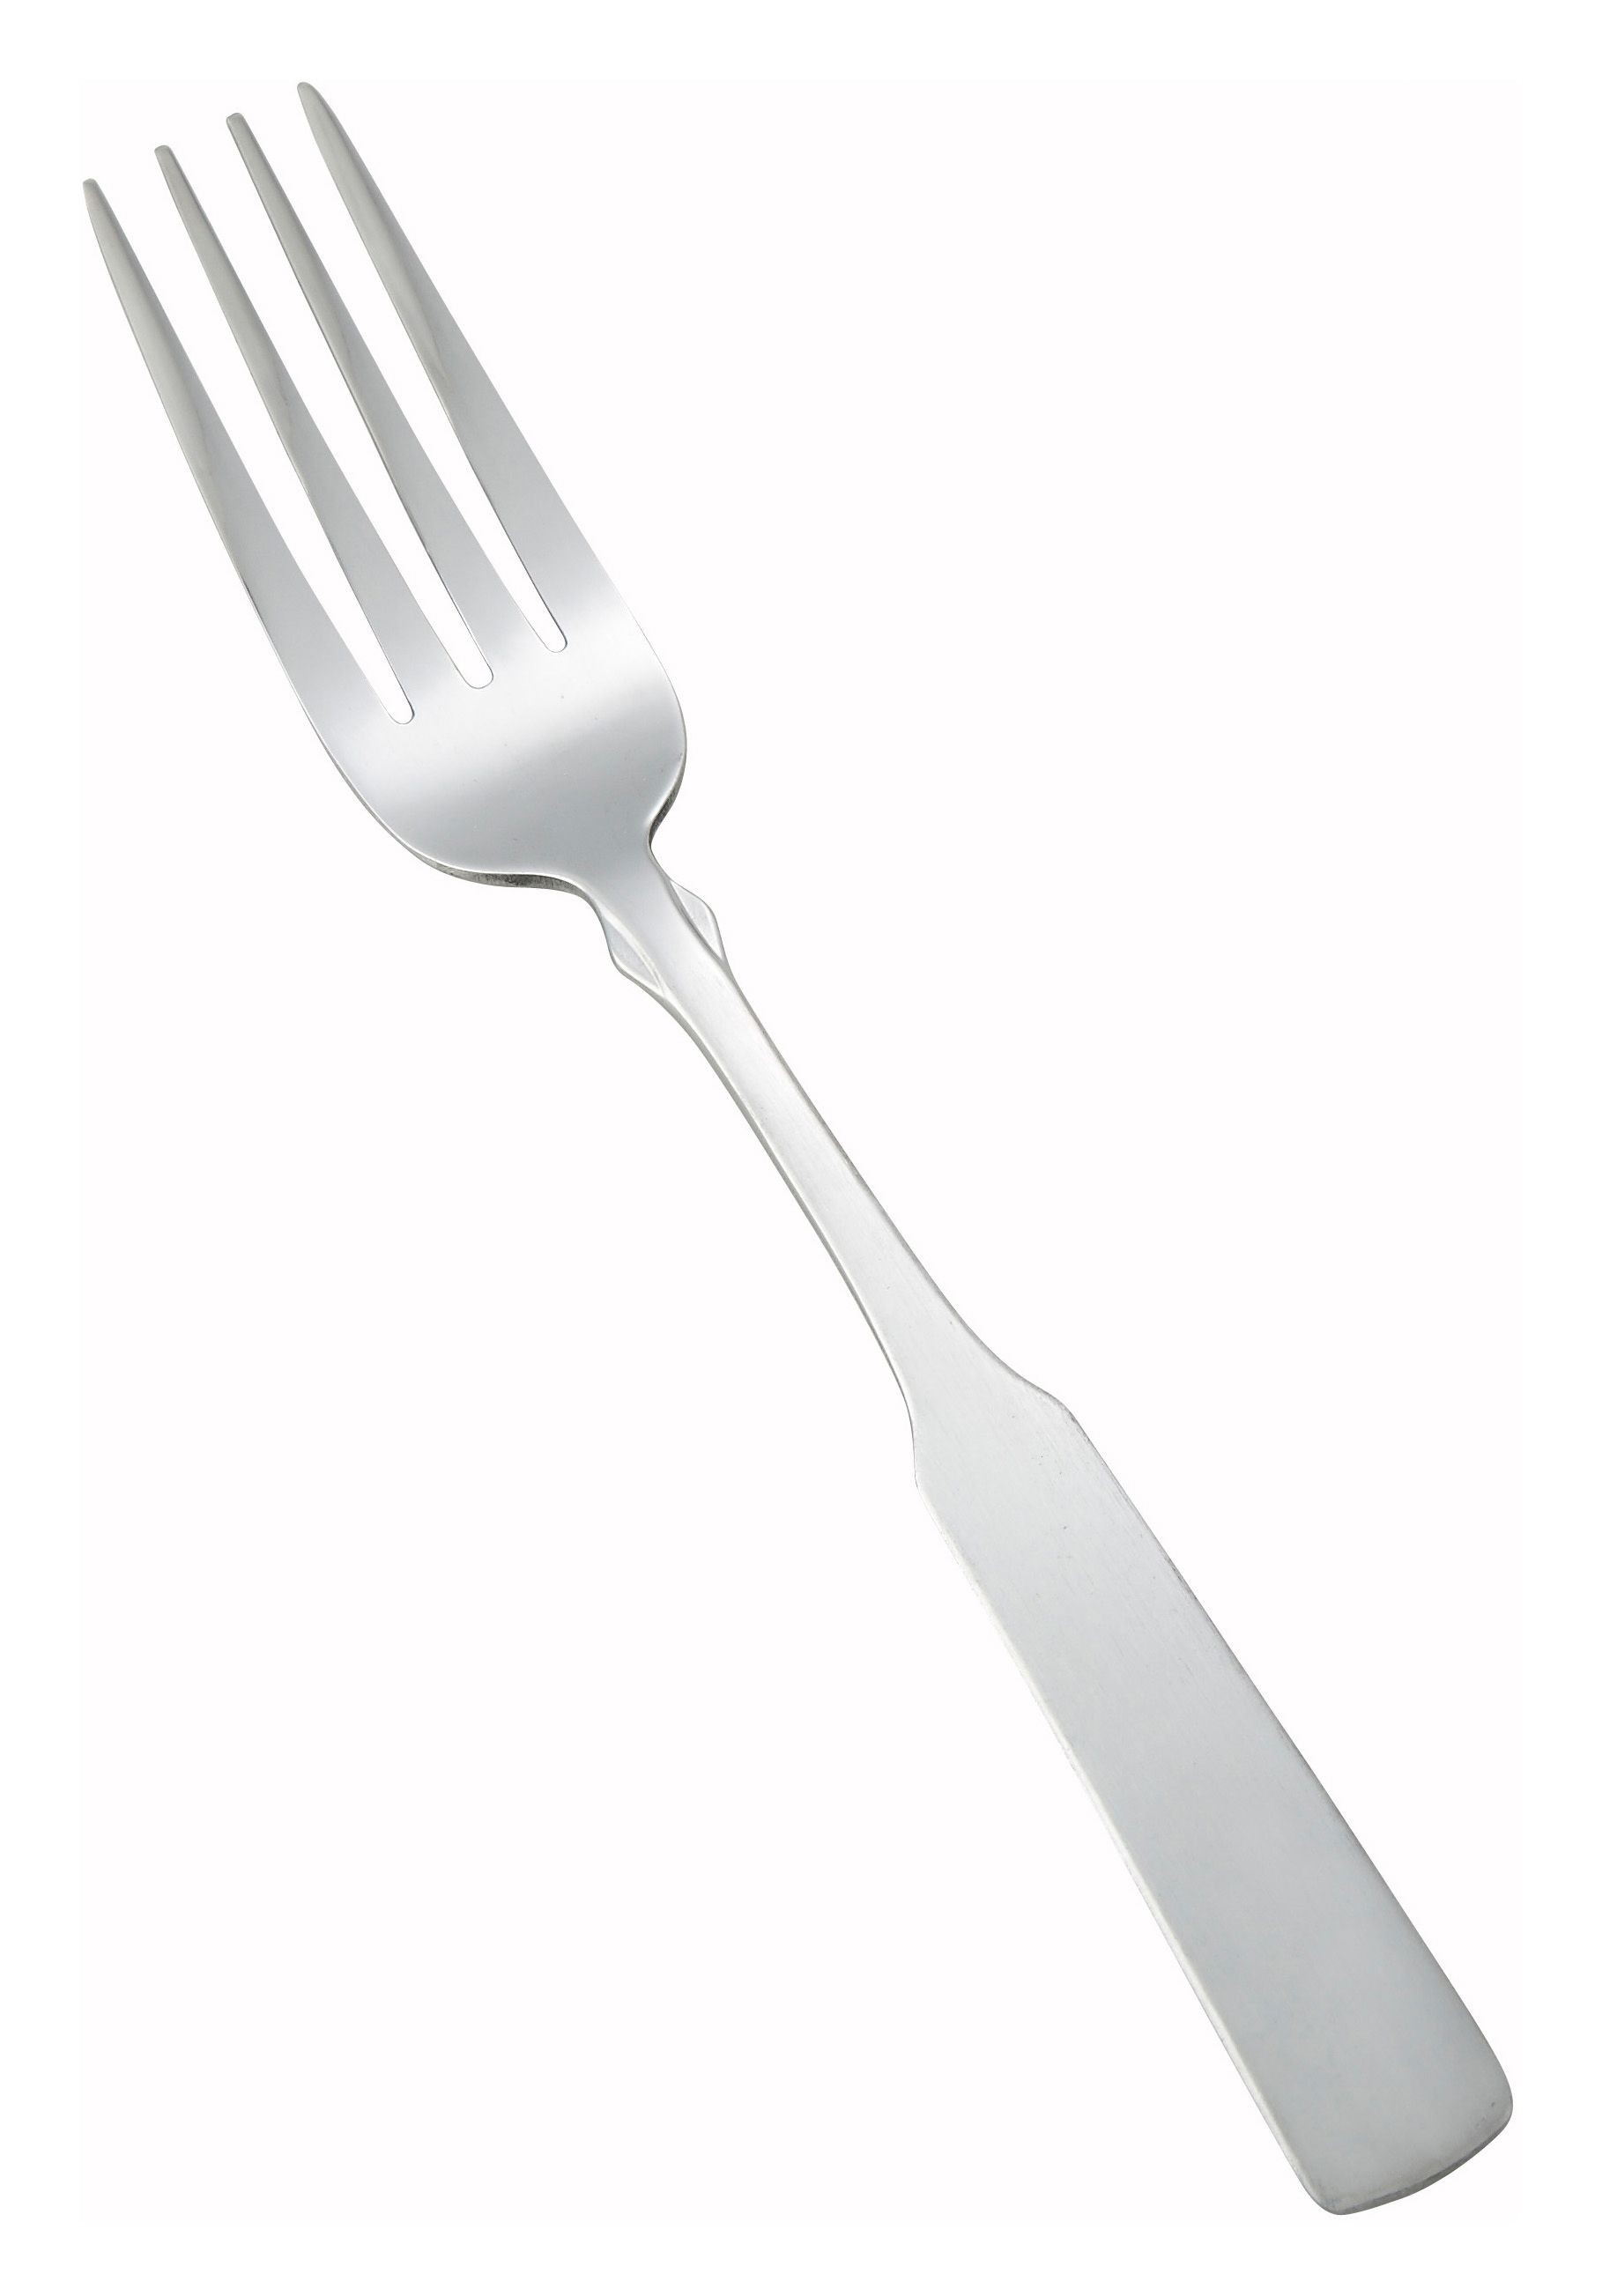 Winco 0025-05 Houston Heavy Weight Satin Finish Stainless Steel Dinner Fork (12/Pack)